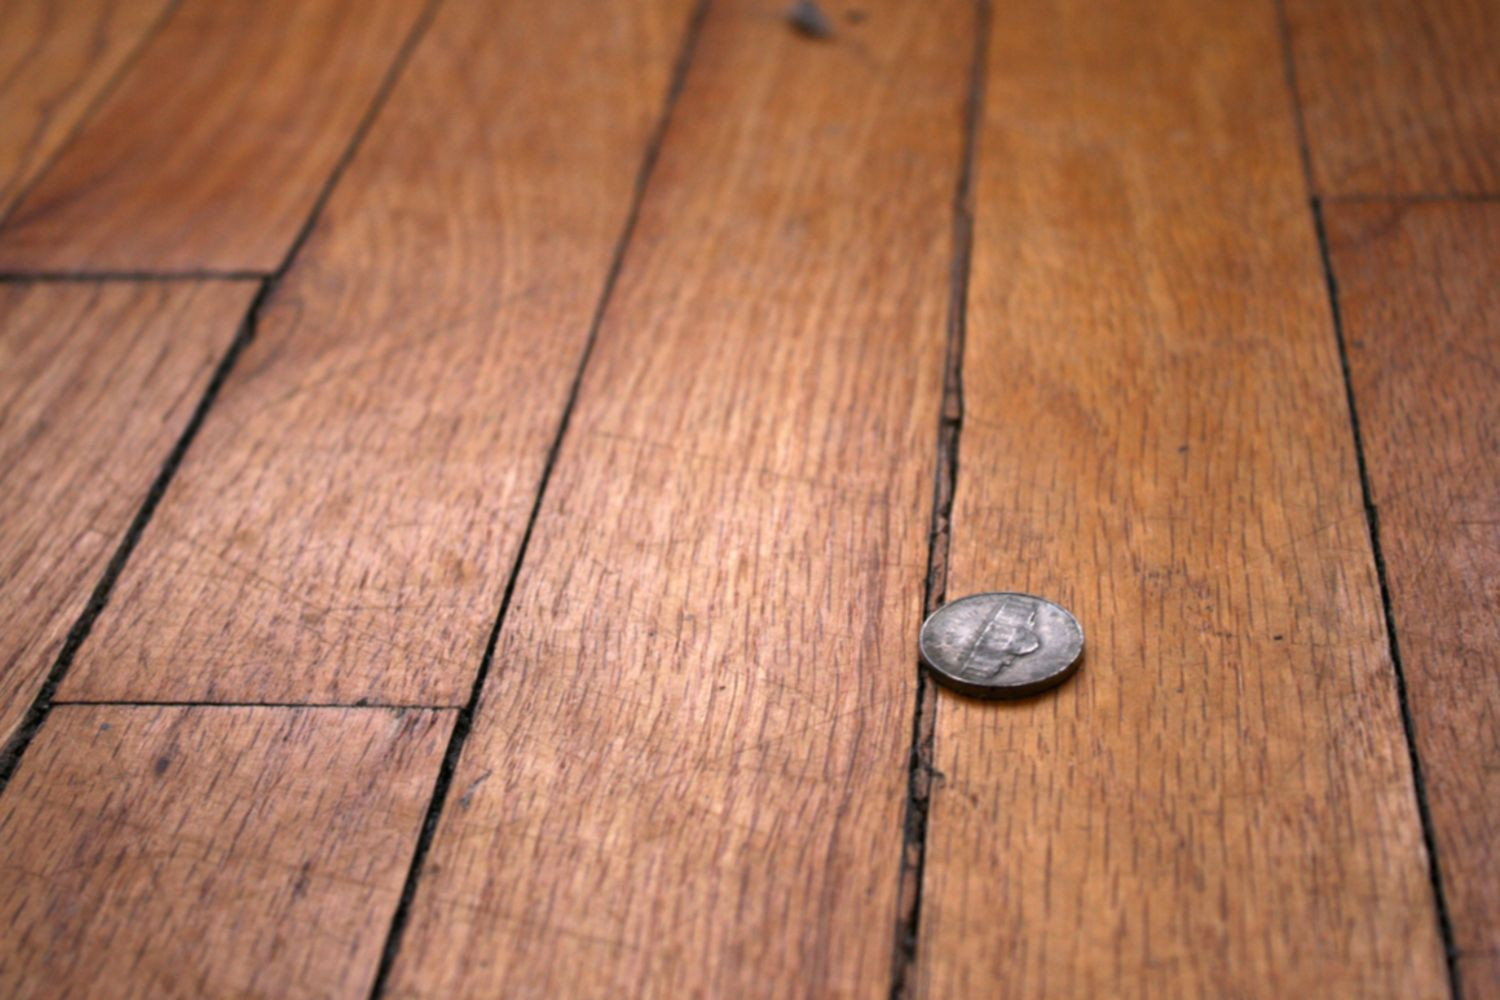 best humidity level for hardwood floors in winter of why your engineered wood flooring has gaps regarding wood floor with gaps between boards 1500 x 1000 56a49eb25f9b58b7d0d7df8d